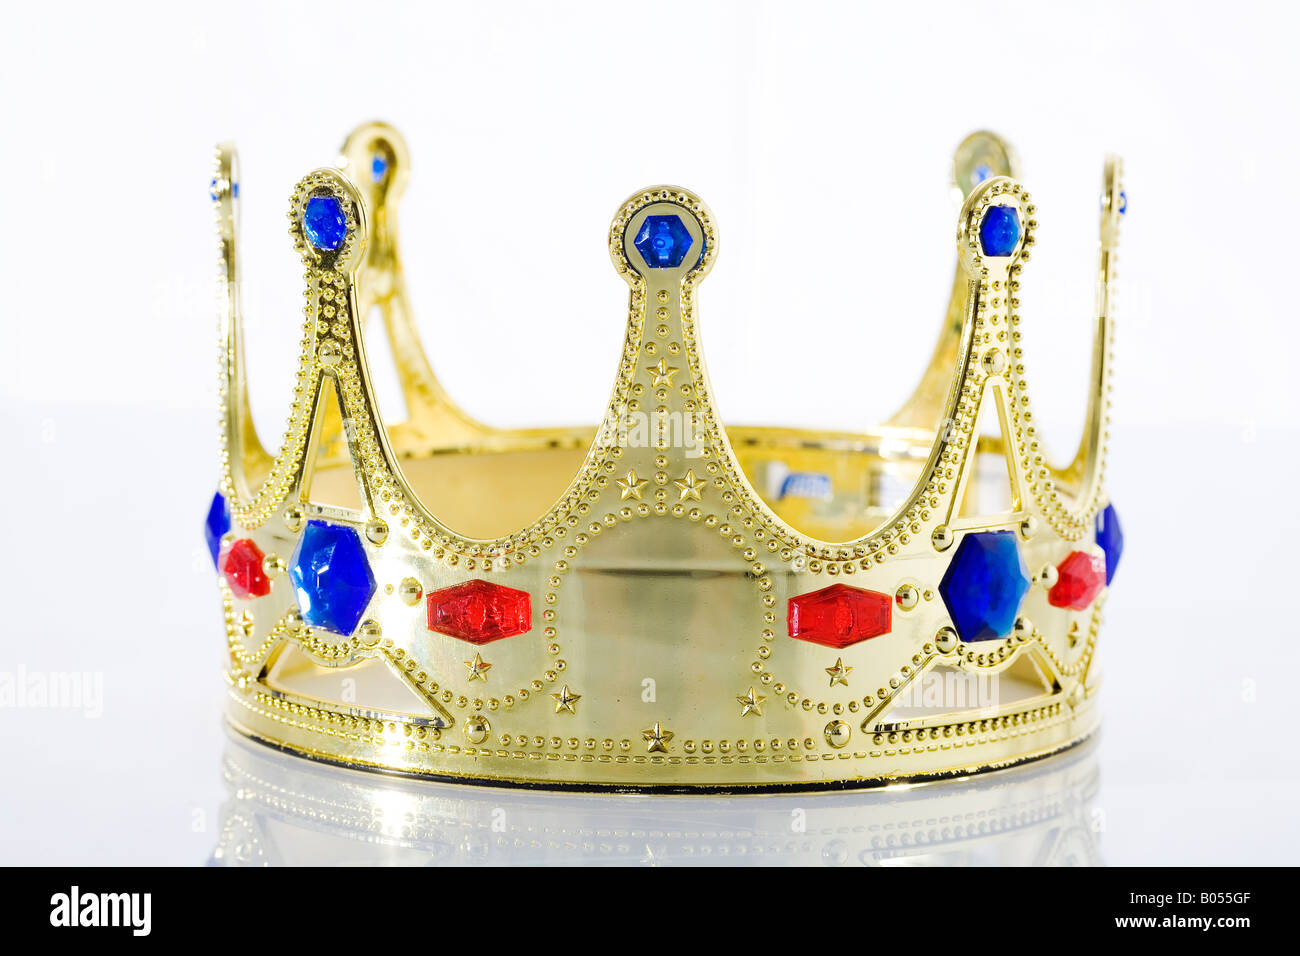 Crown with jewels - Stock Image